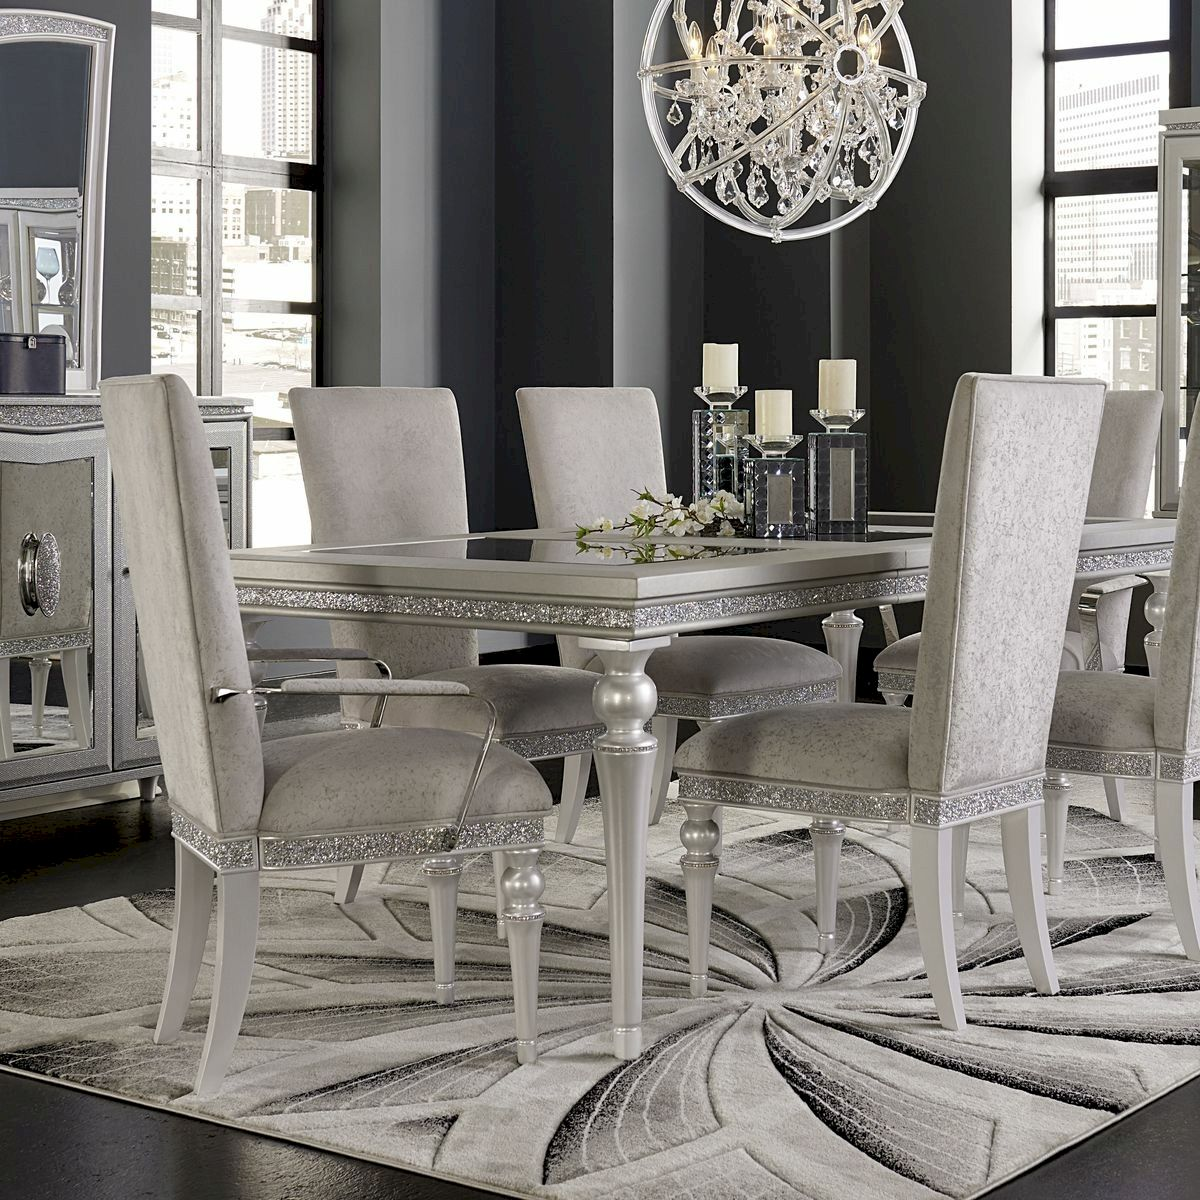 50 Gorgeous Dinning Room Design and Decor Ideas (48)